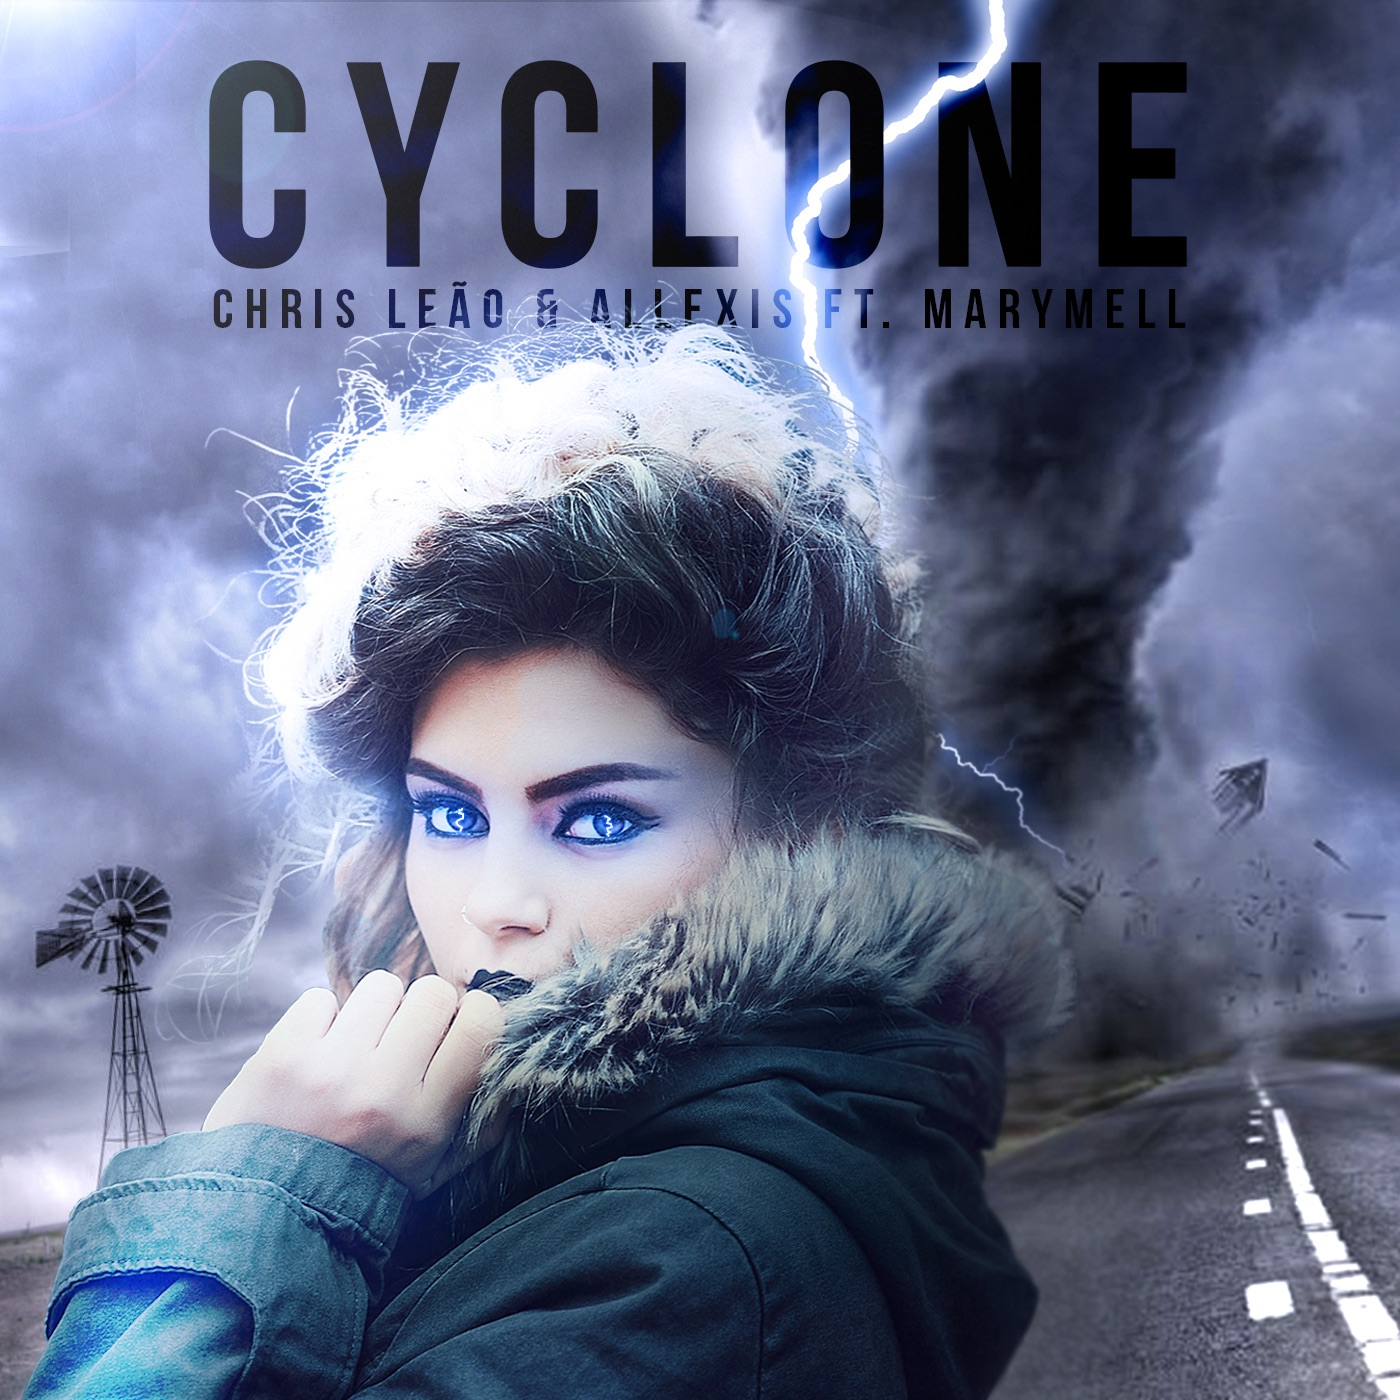 Cyclone (feat. Marymell)